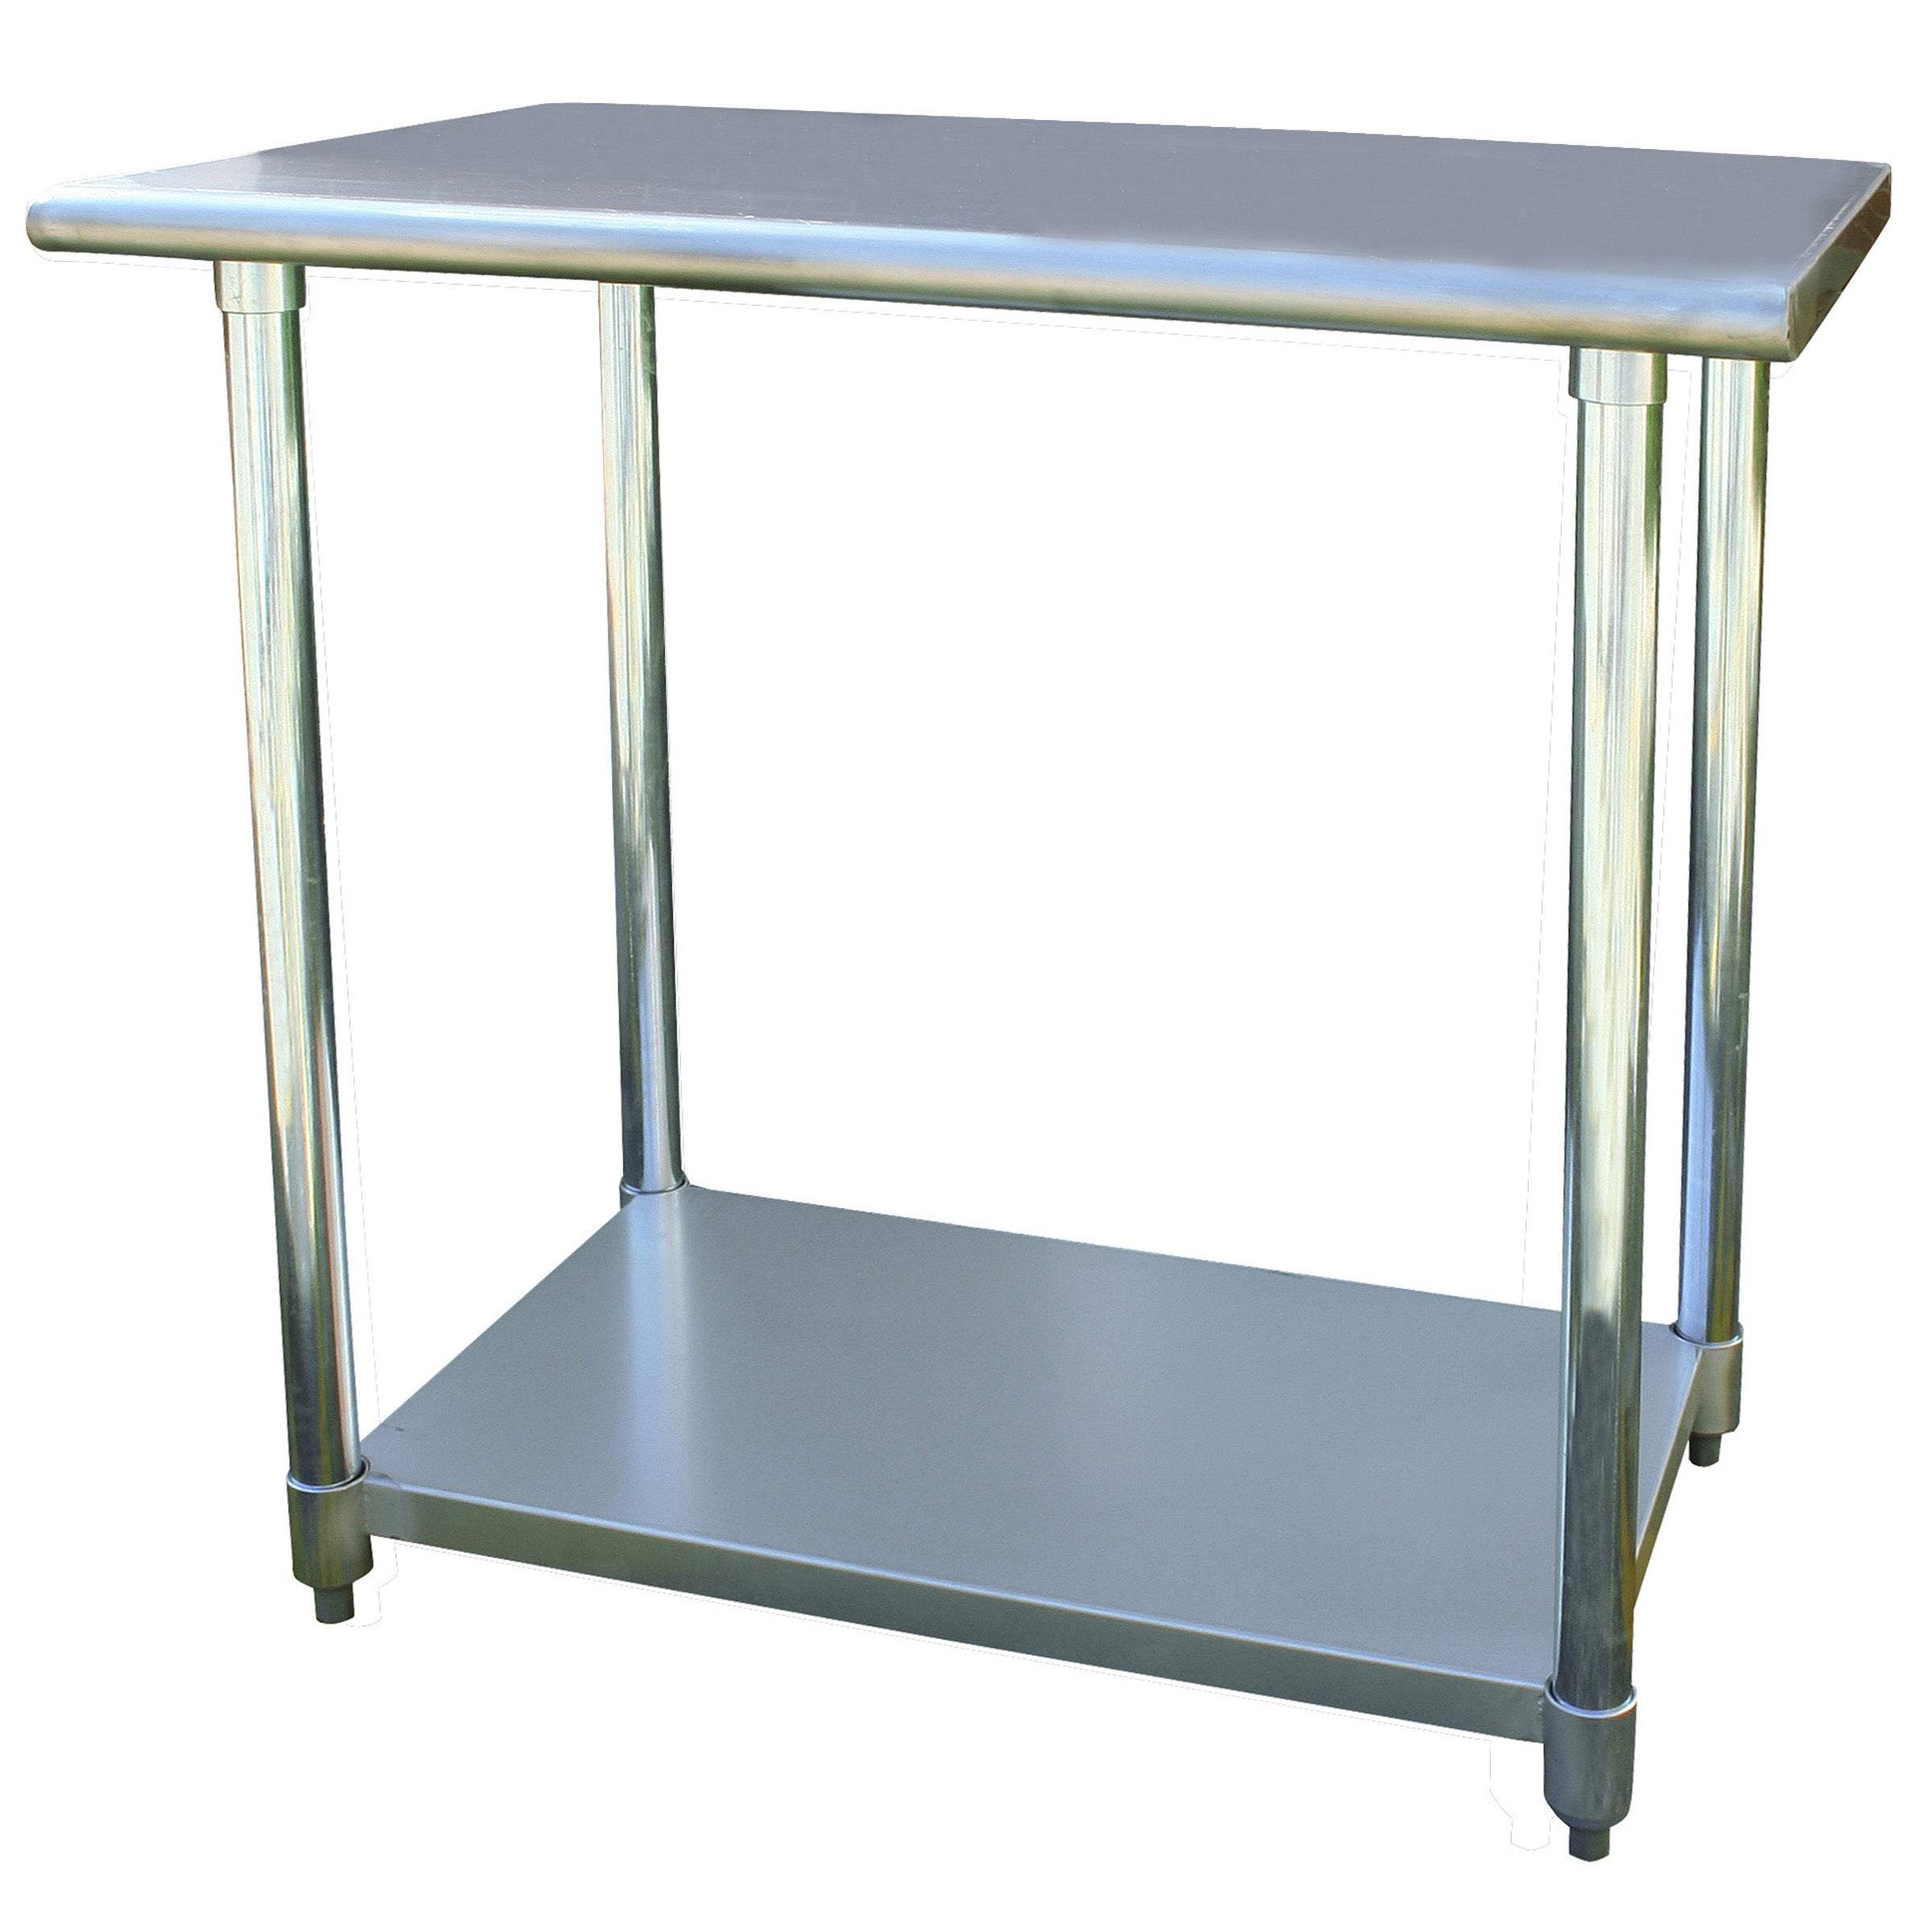 Sportsman Series Stainless Steel Work Table - Free Shipping Today ...